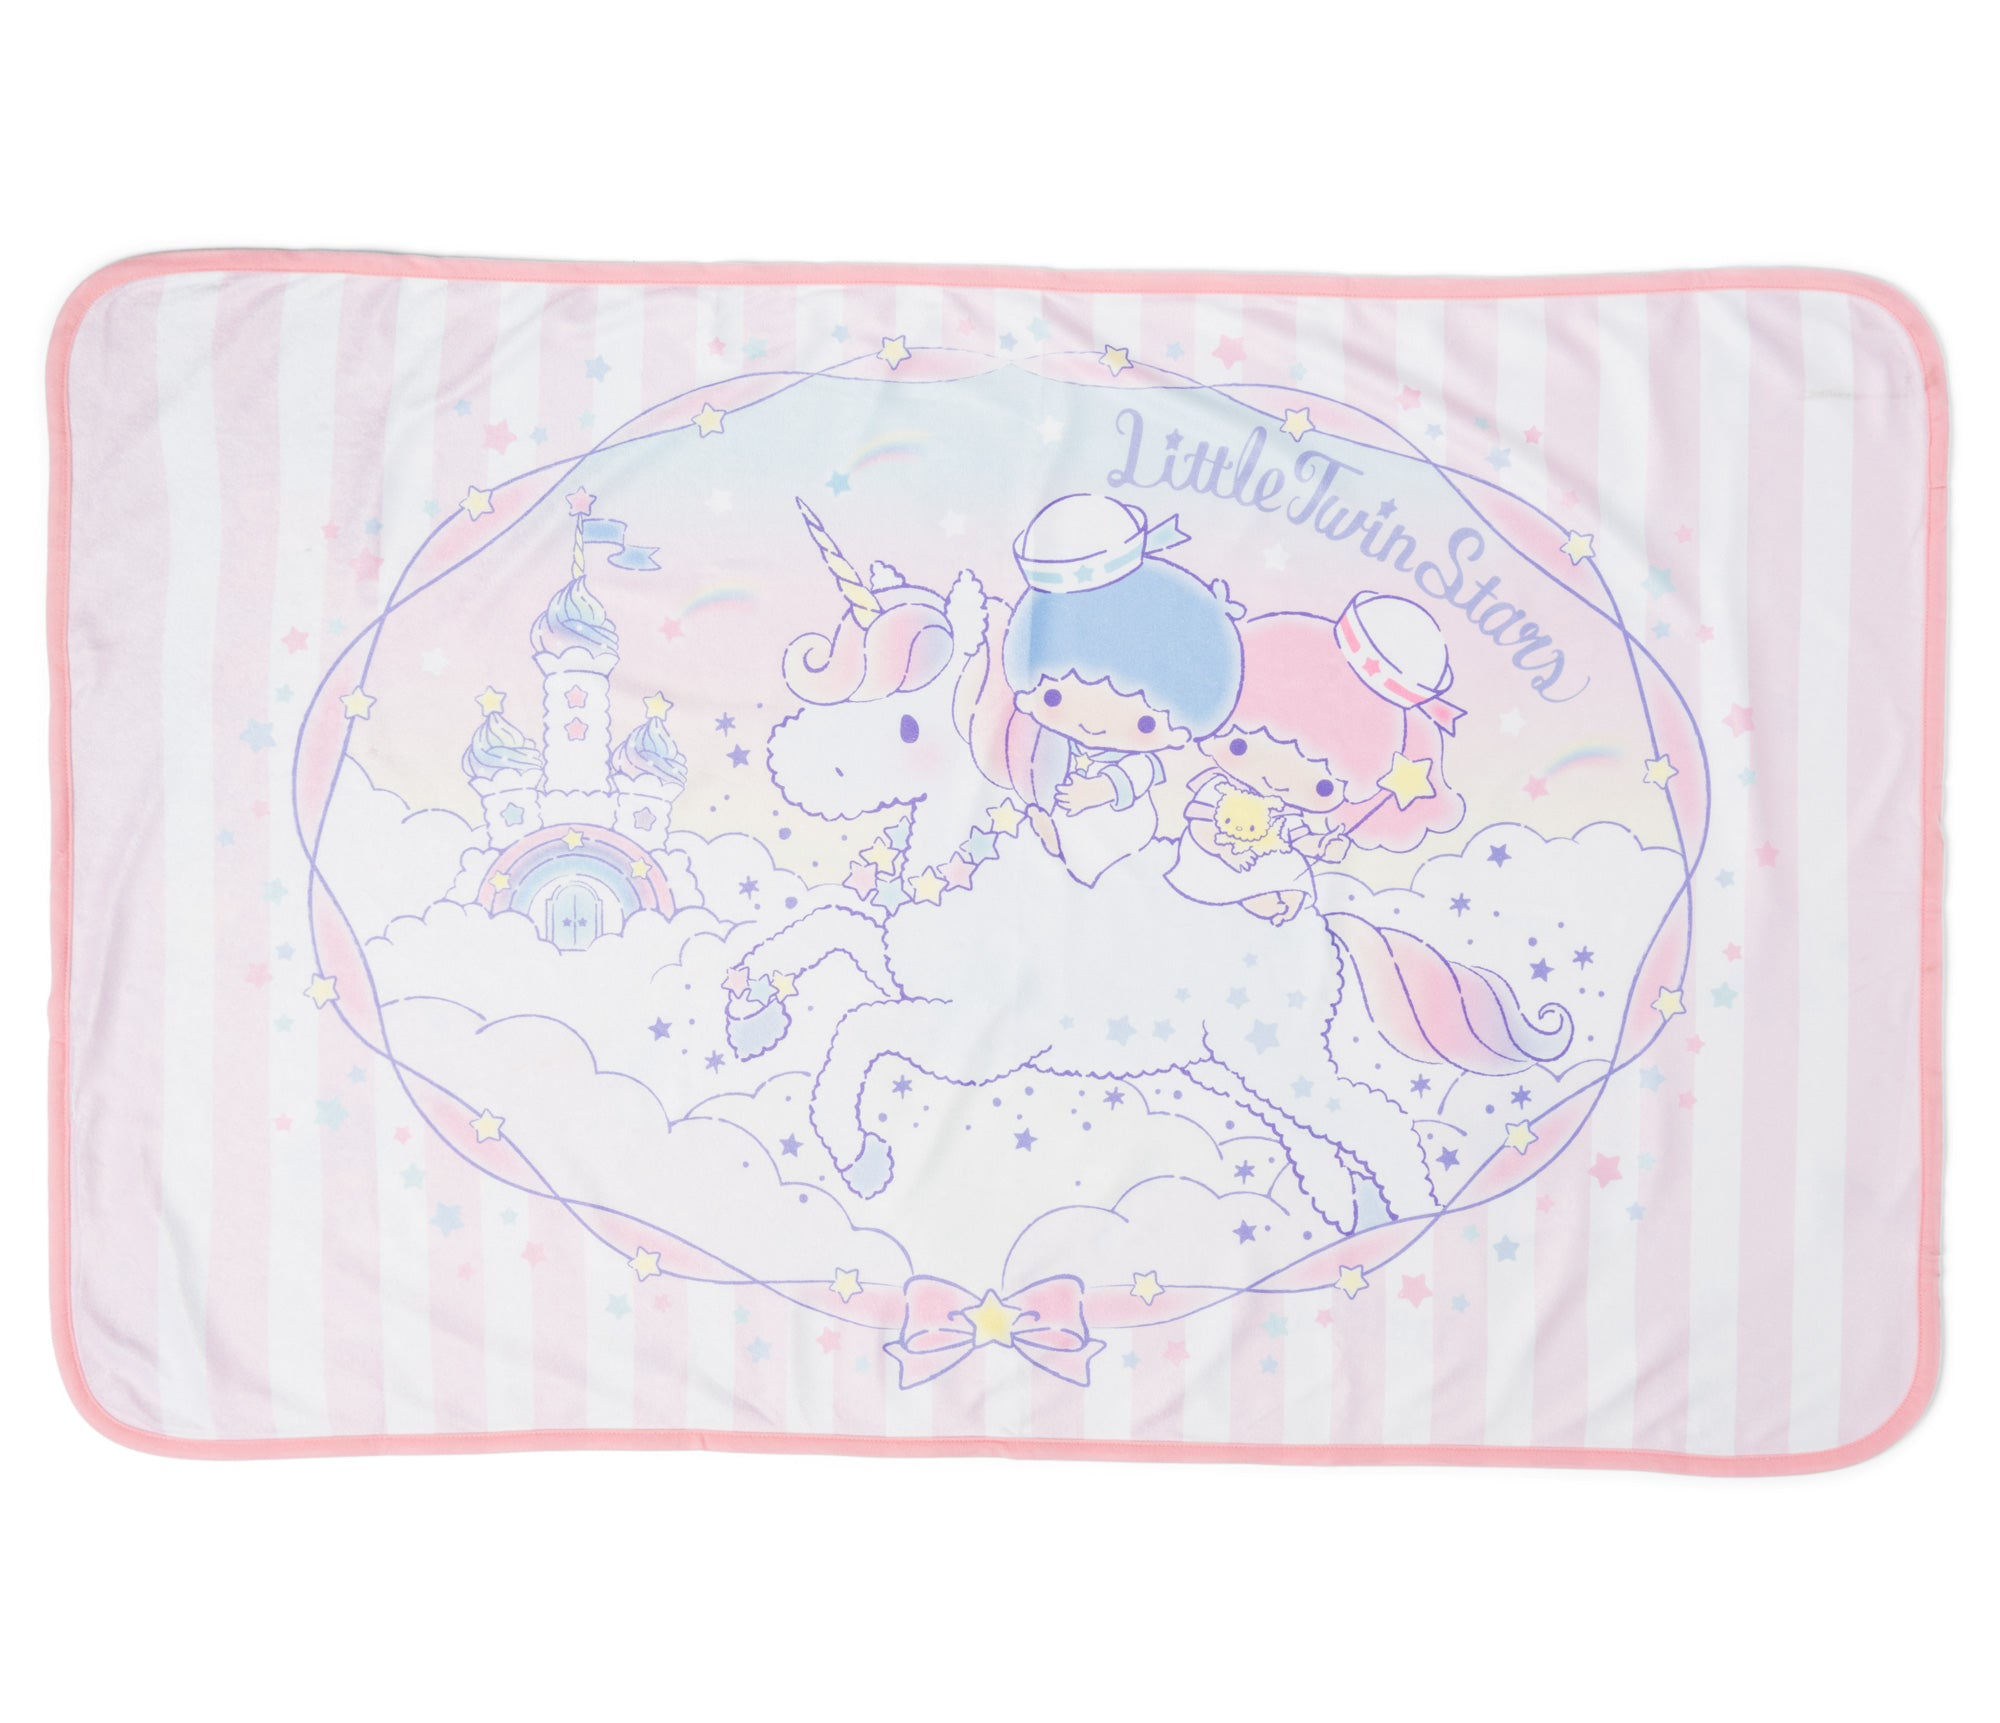 Little Twin Stars Lap Blanket